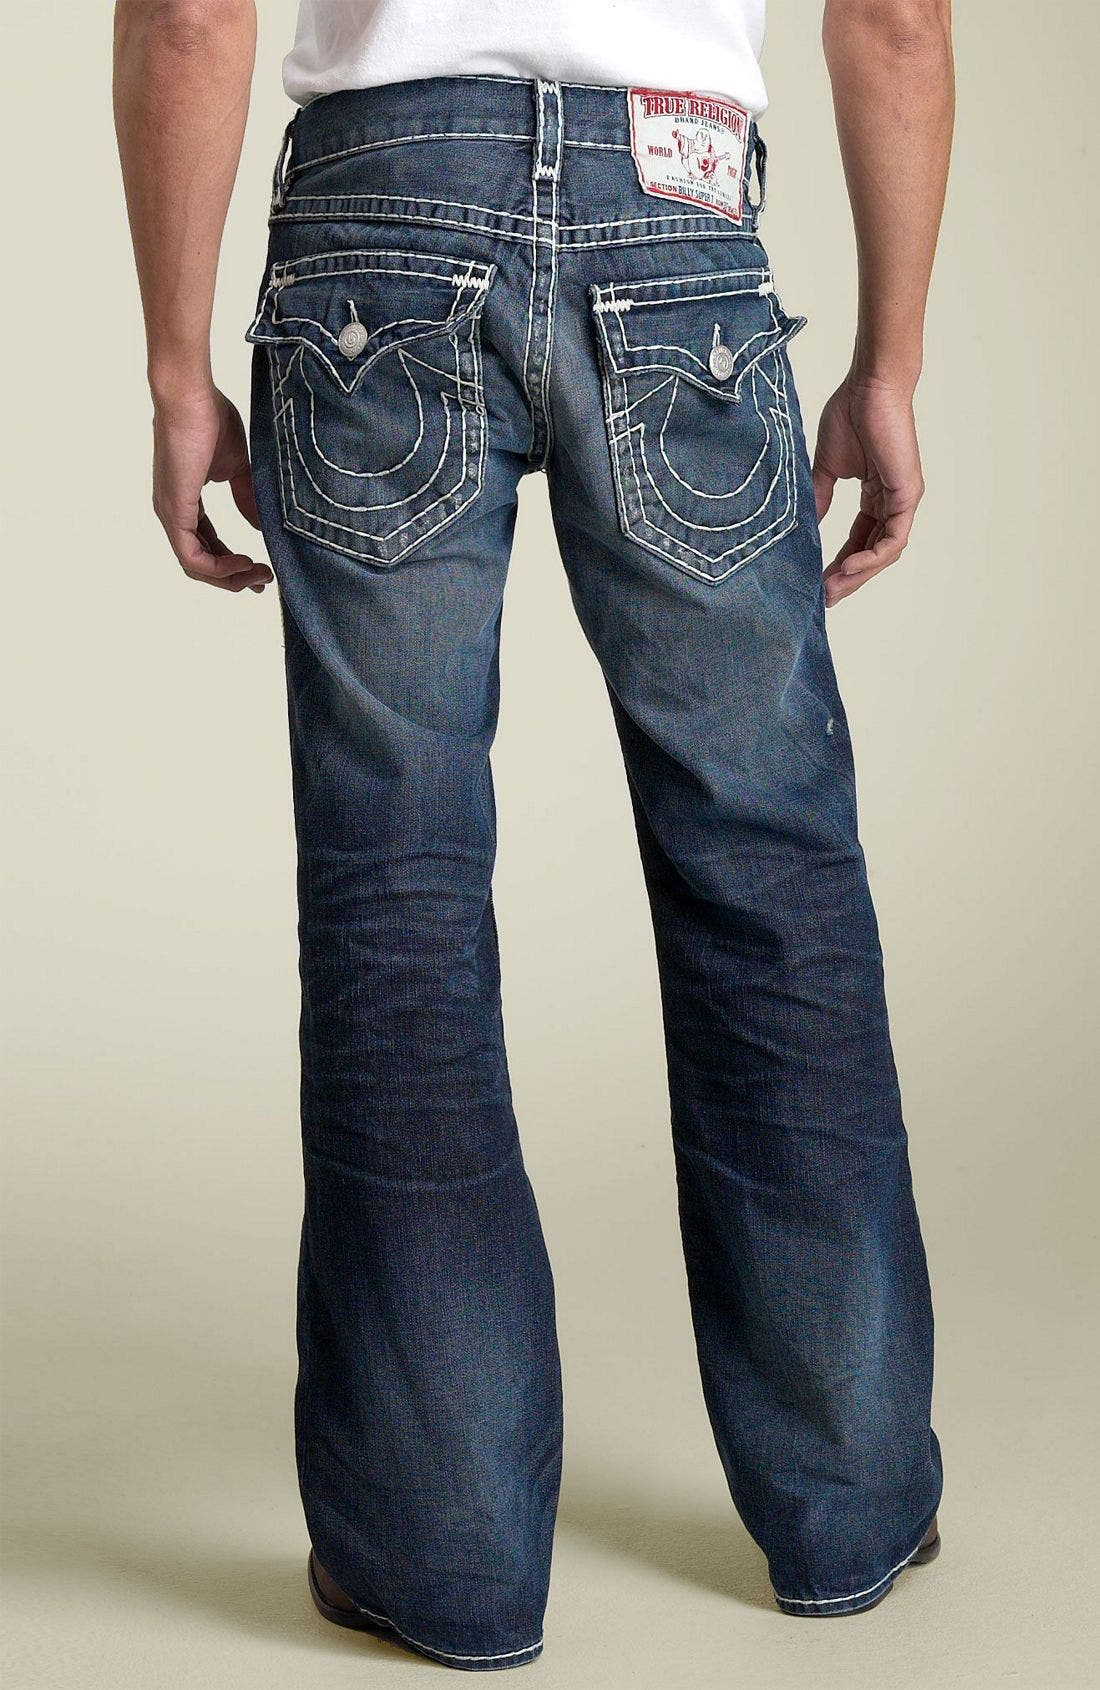 Alternate Image 1 Selected - True Religion Brand Jeans 'Billy - Natural Super-T' Bootcut Jeans (Medium Moto Psycho)